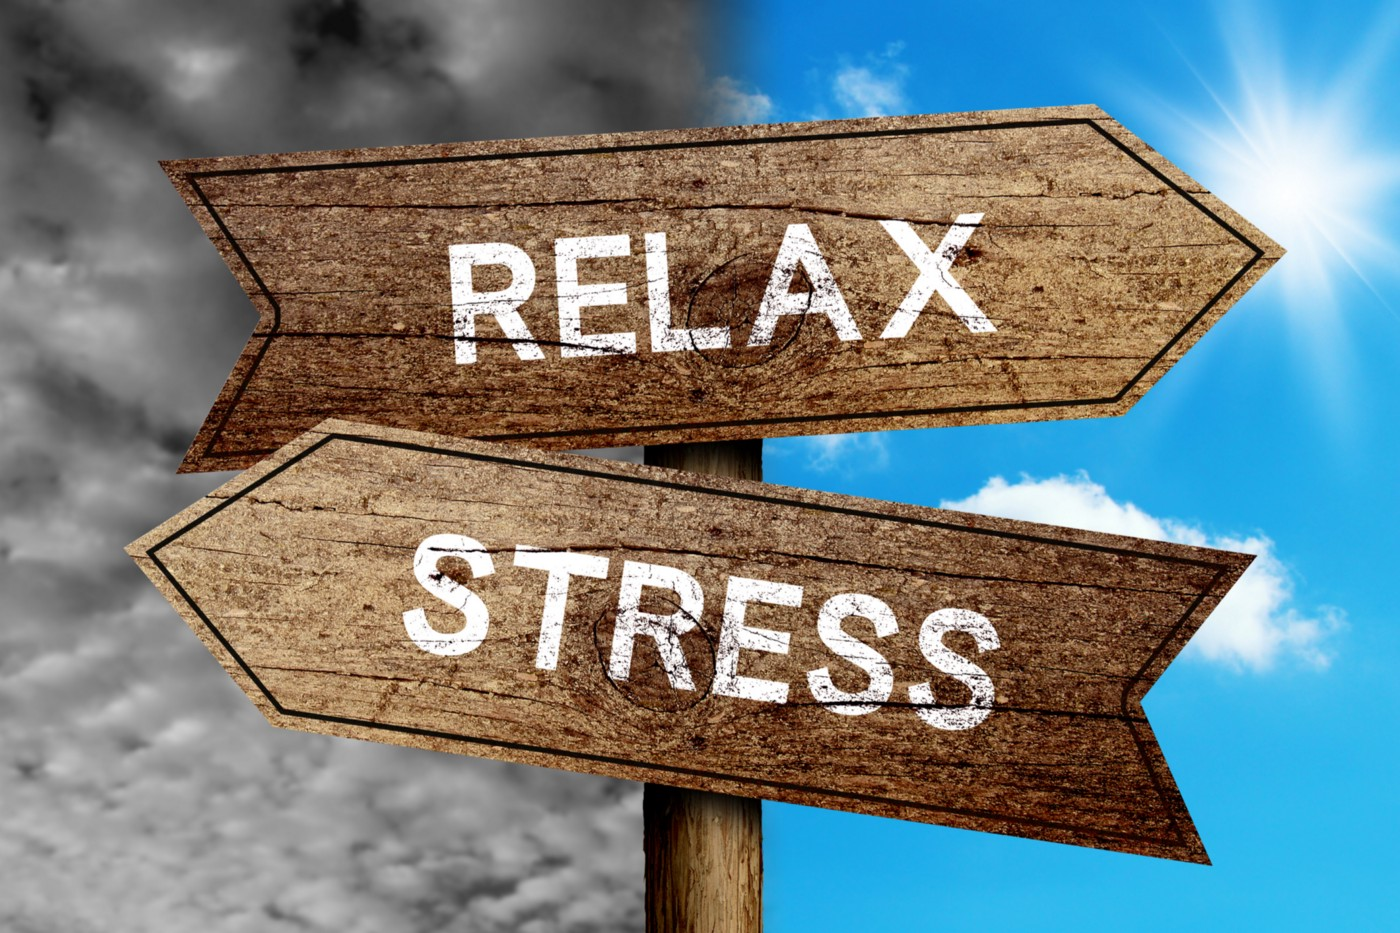 """Road signs. The sign in one direction says """"RELAX,"""" while the sign in the other dirction says """"STRESS."""""""